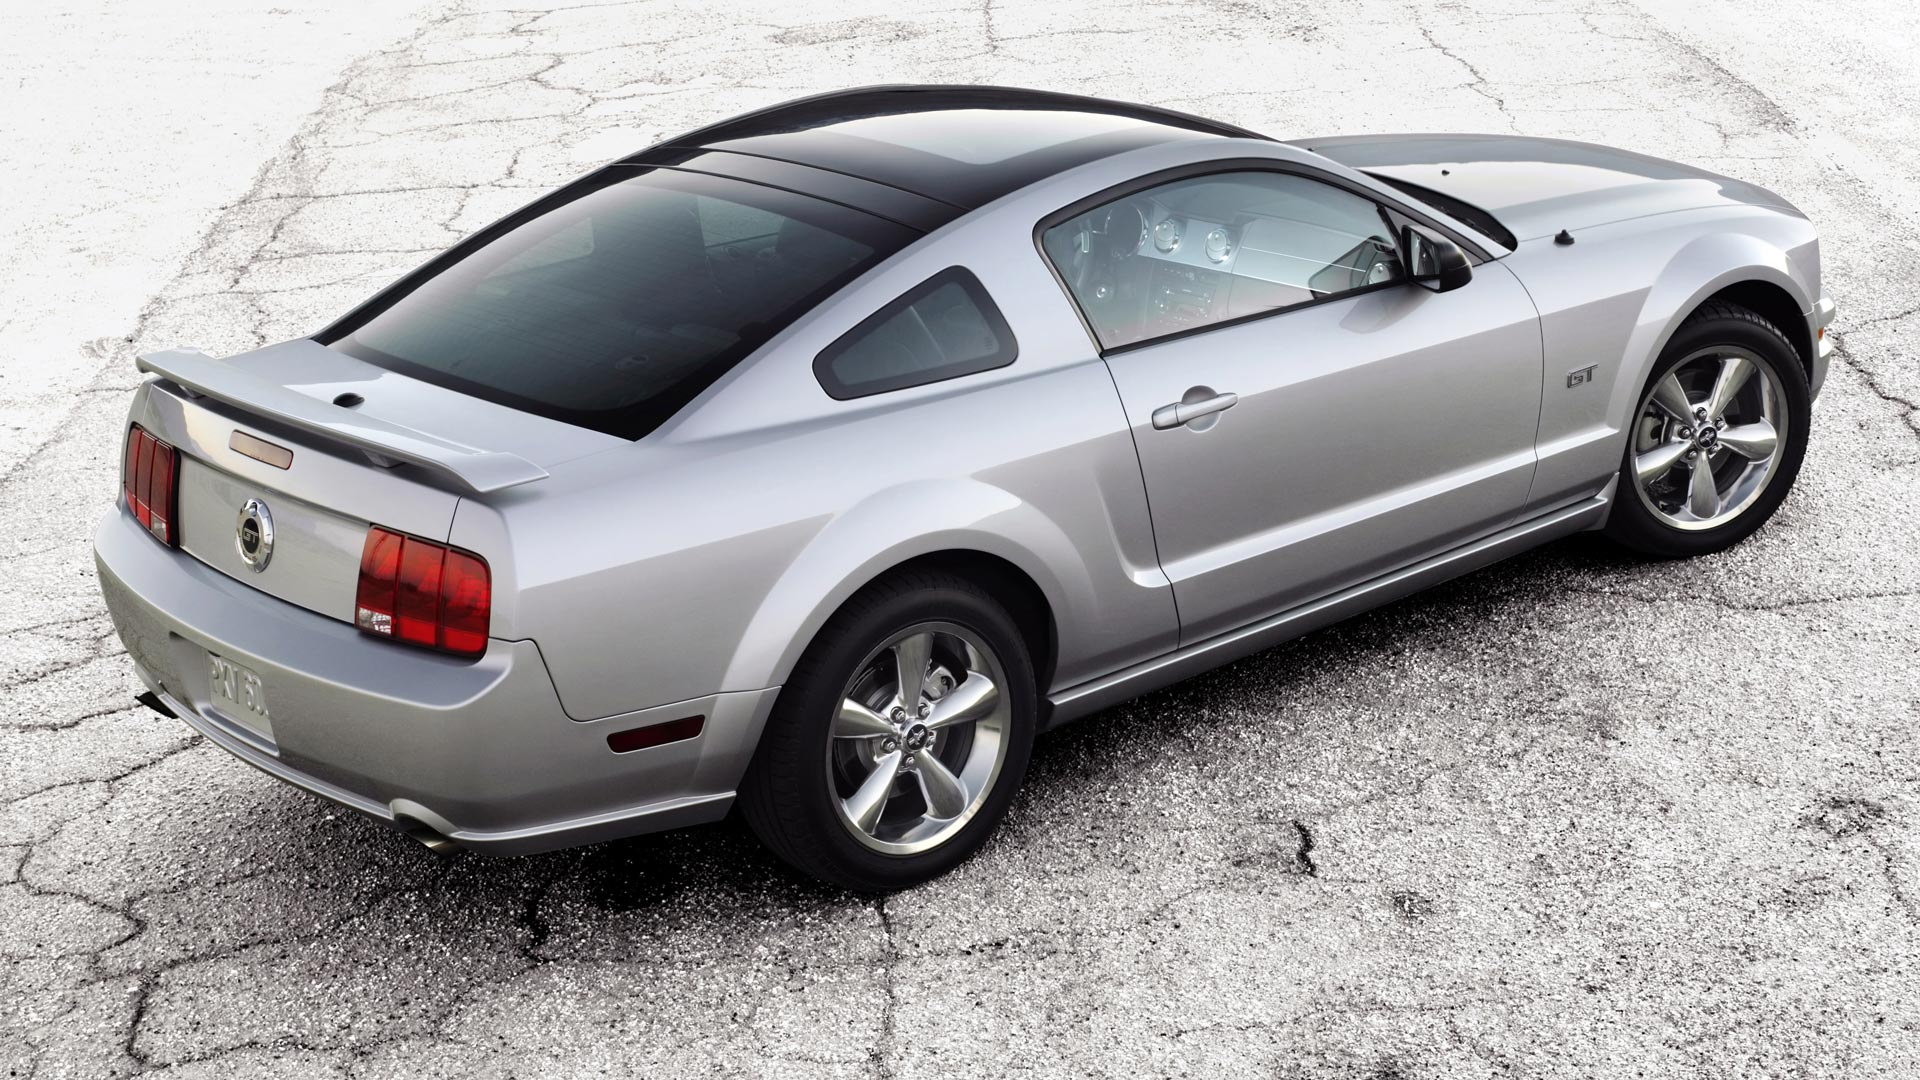 2009 Ford Mustang #18